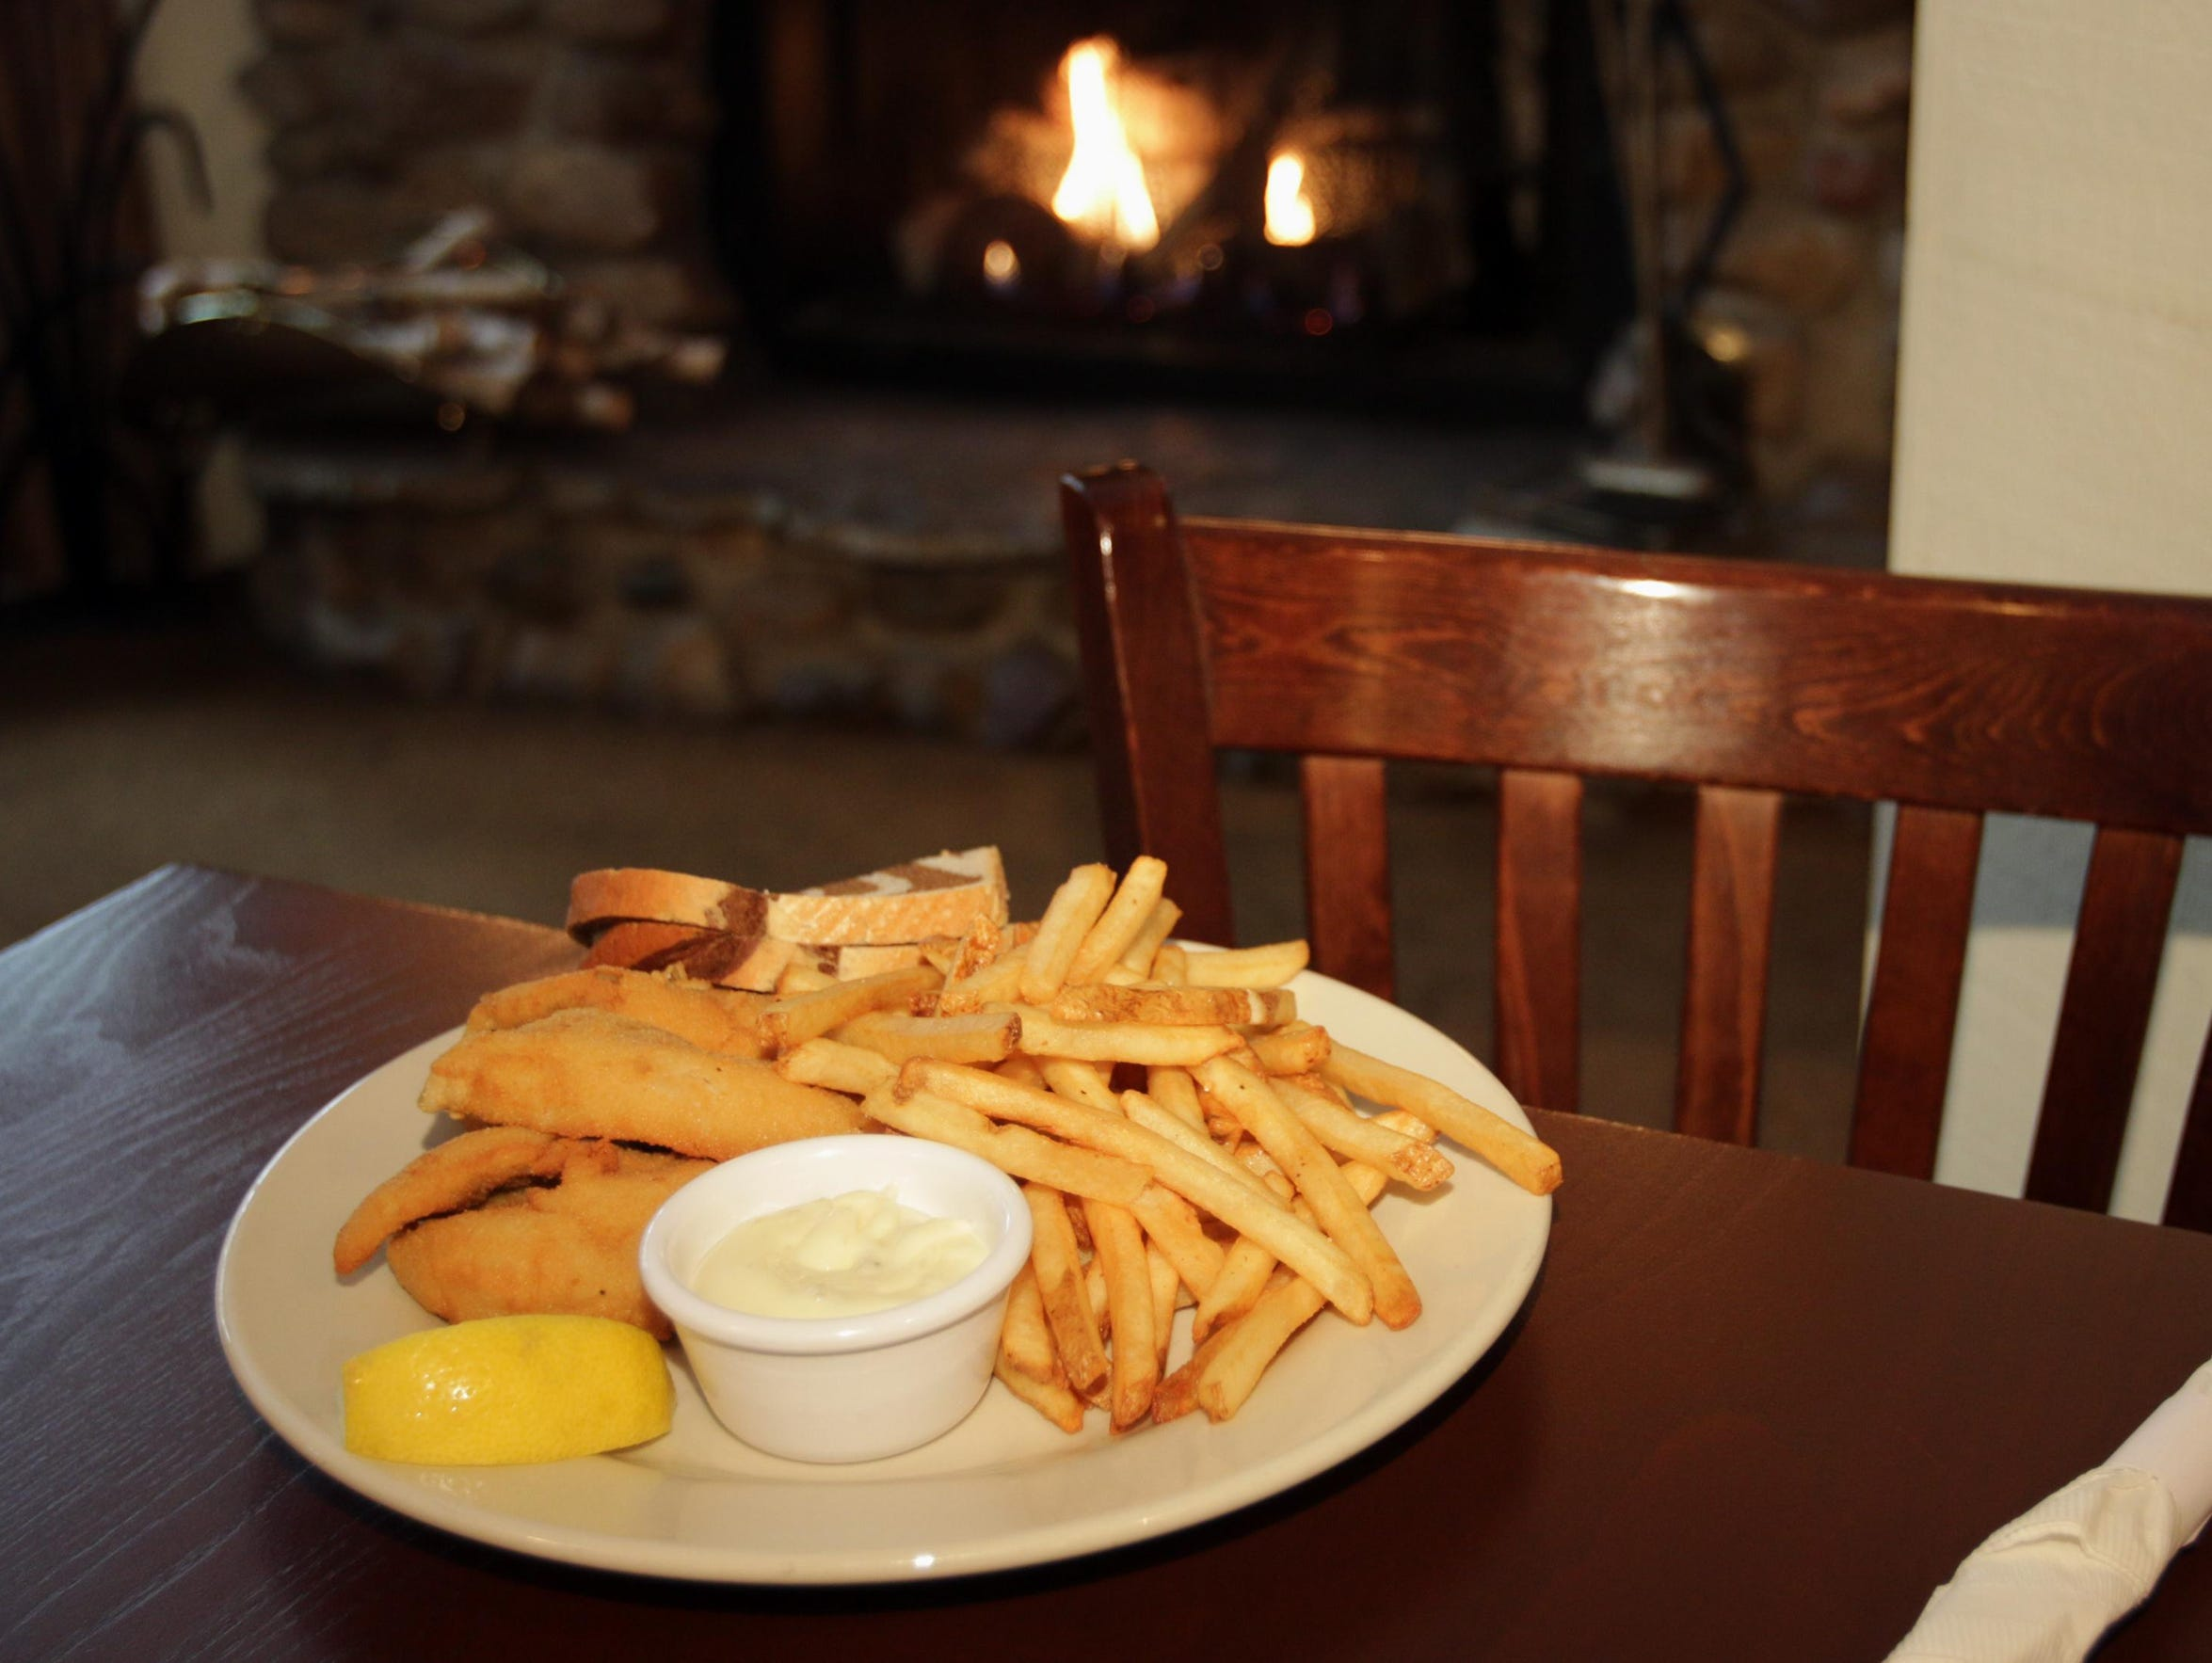 Majerle's Black River Grill was voted the best overall